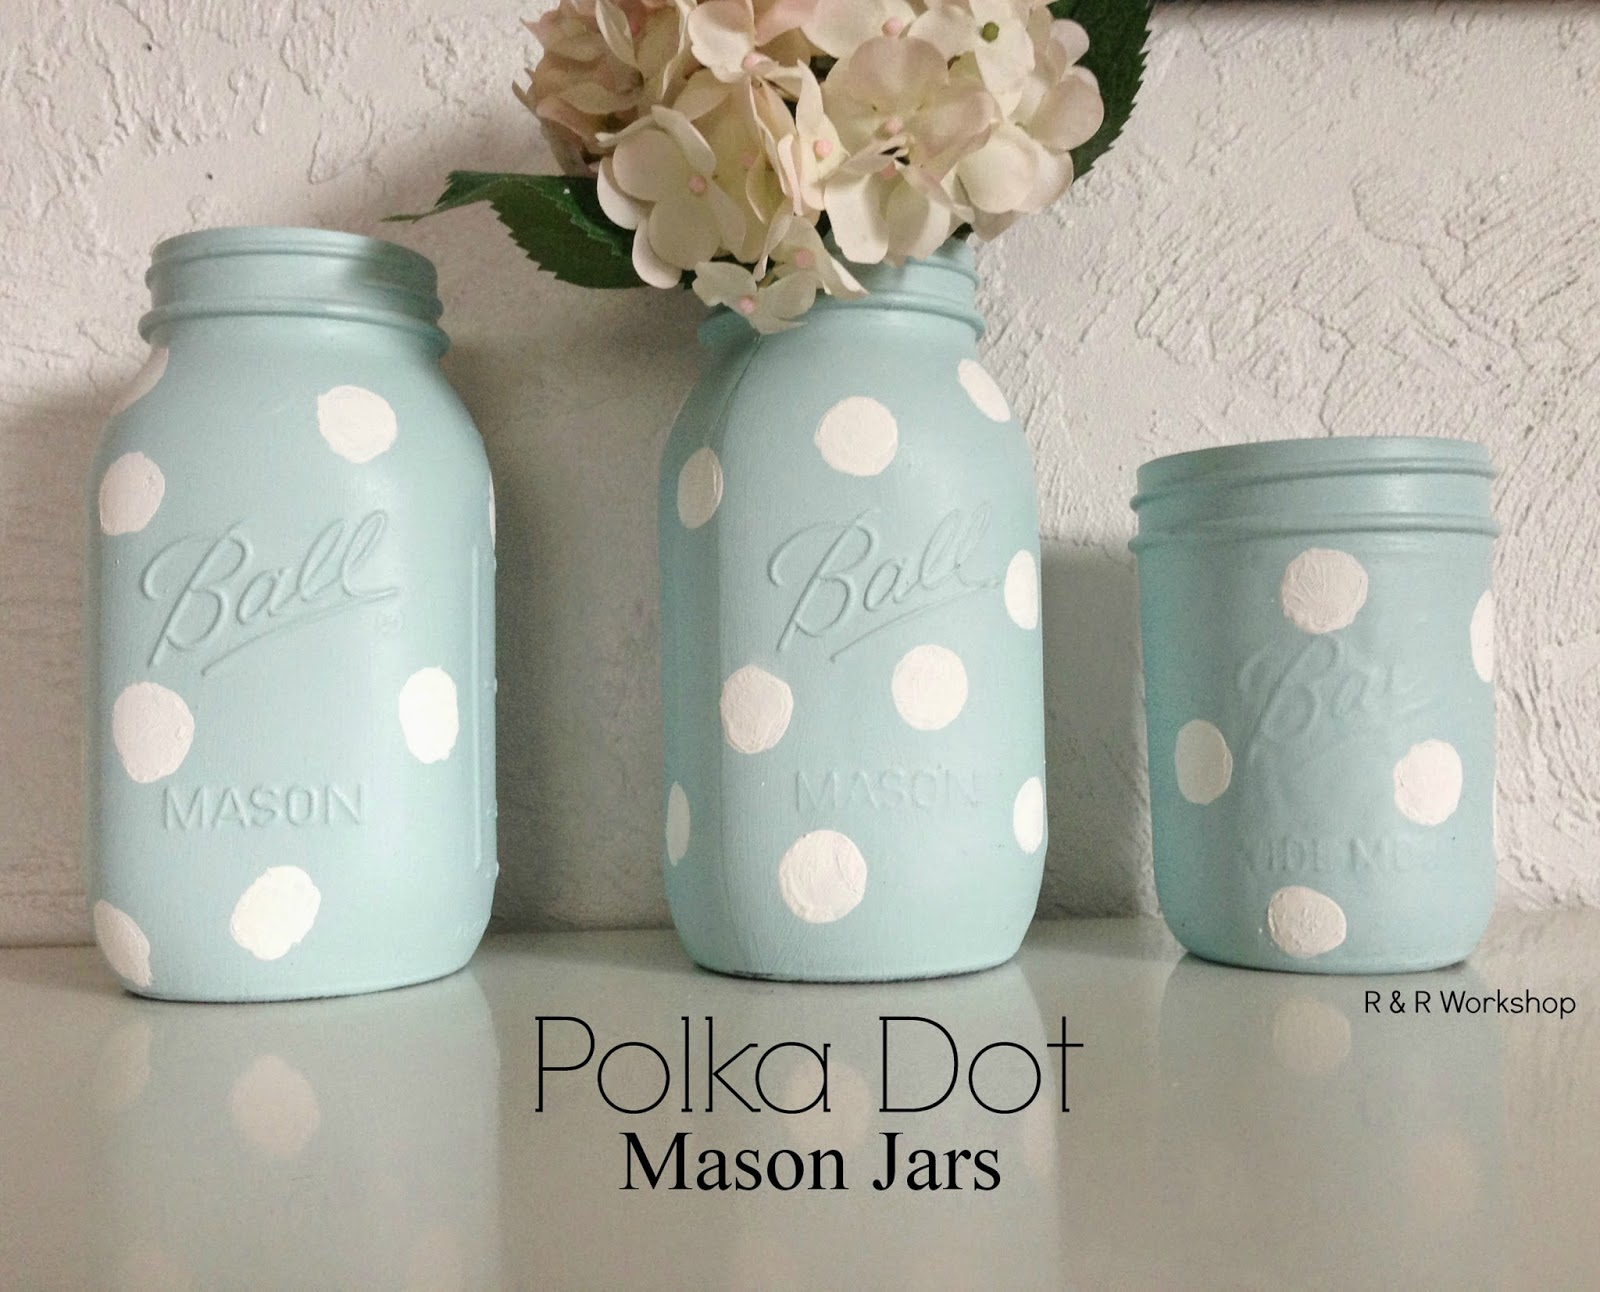 Polka dot mason jars fun crafts kids for Projects to do with mason jars